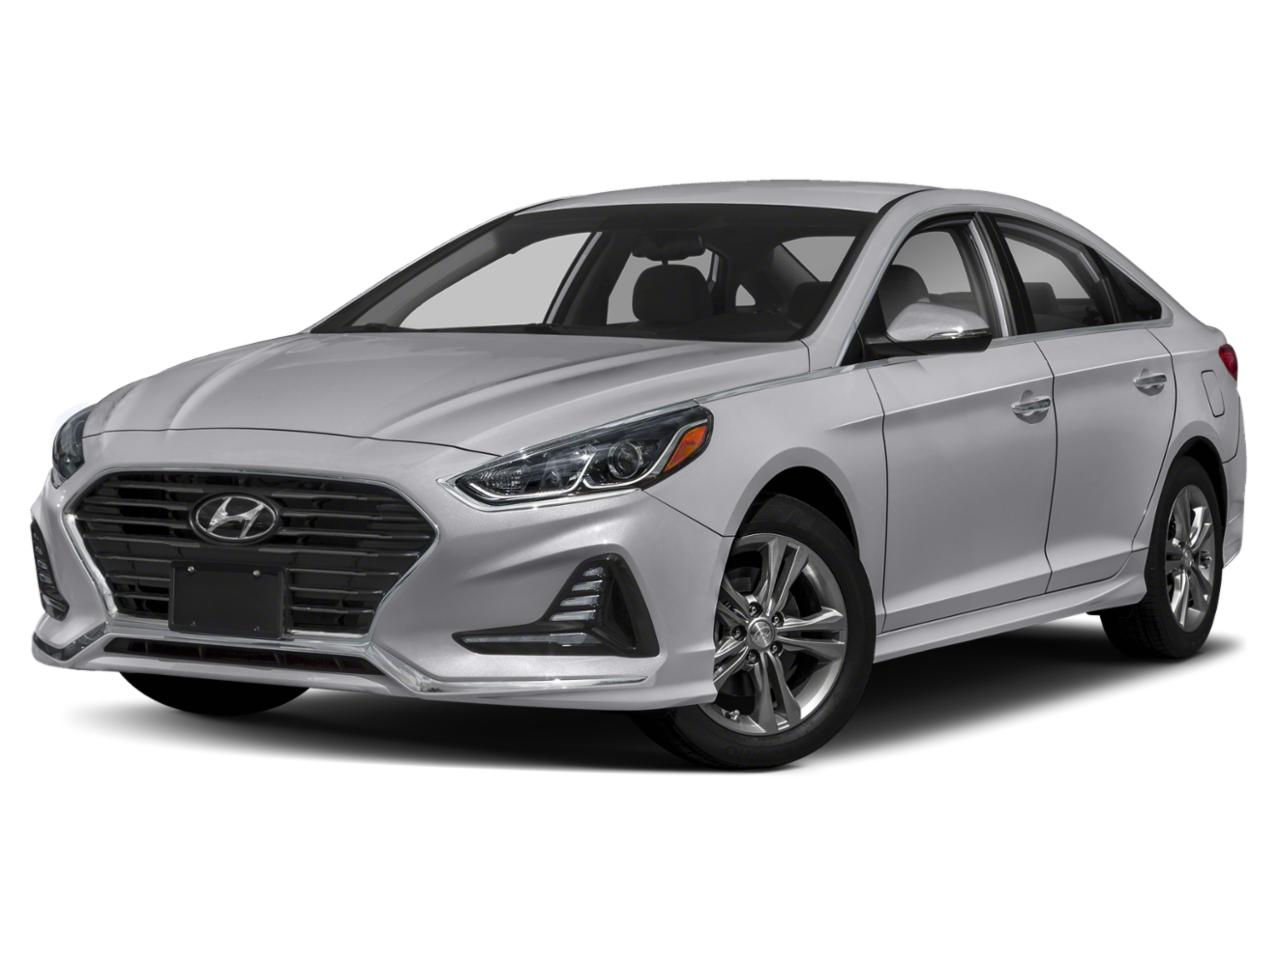 2019 Hyundai Sonata Vehicle Photo in Tuscumbia, AL 35674